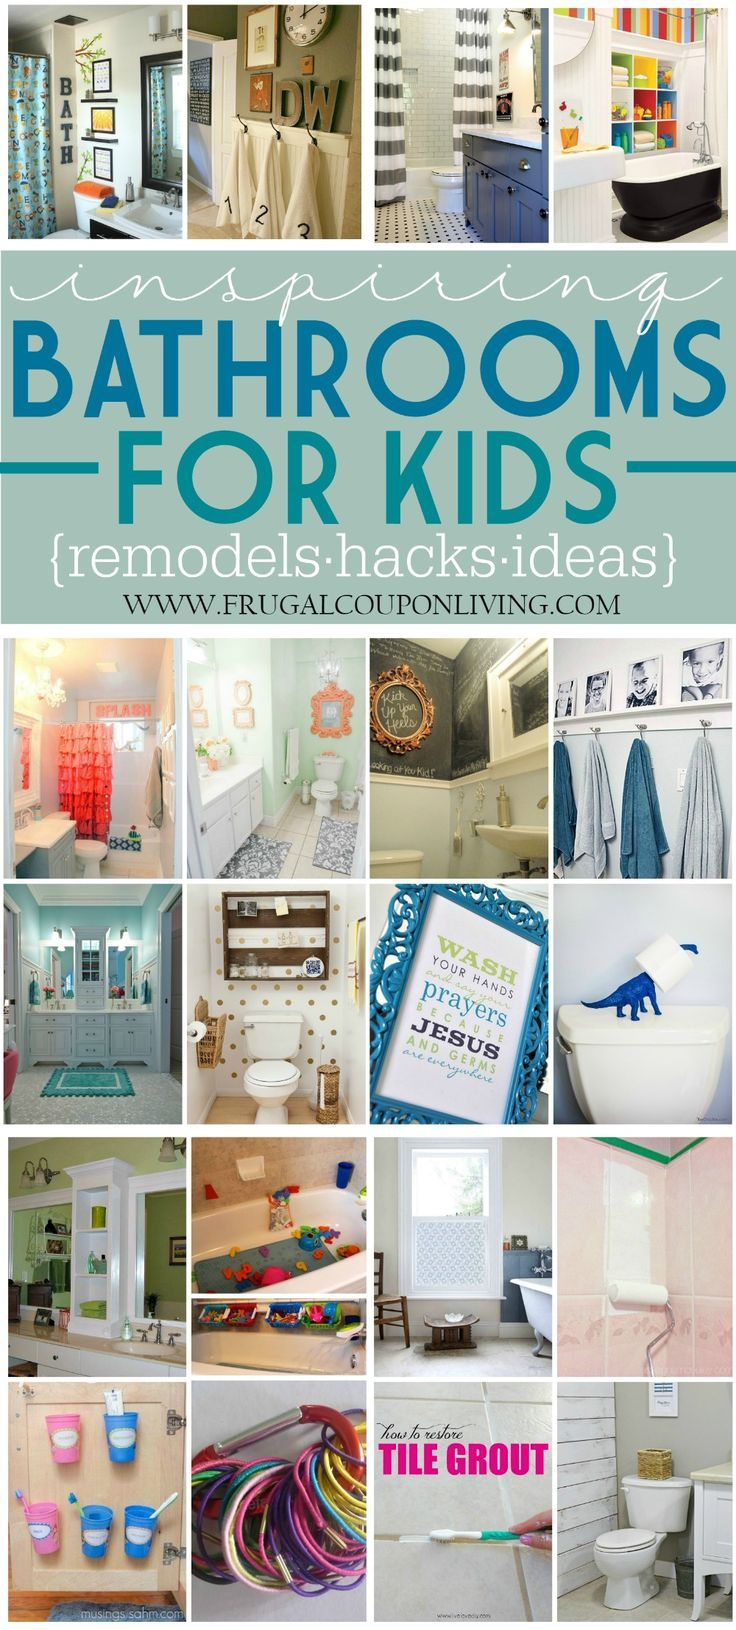 Kids bathroom ideas for boys and girls - Inspiring Kids Bathrooms Decorations Remodels And Hacks On Frugal Coupon Living Girls Bathroom